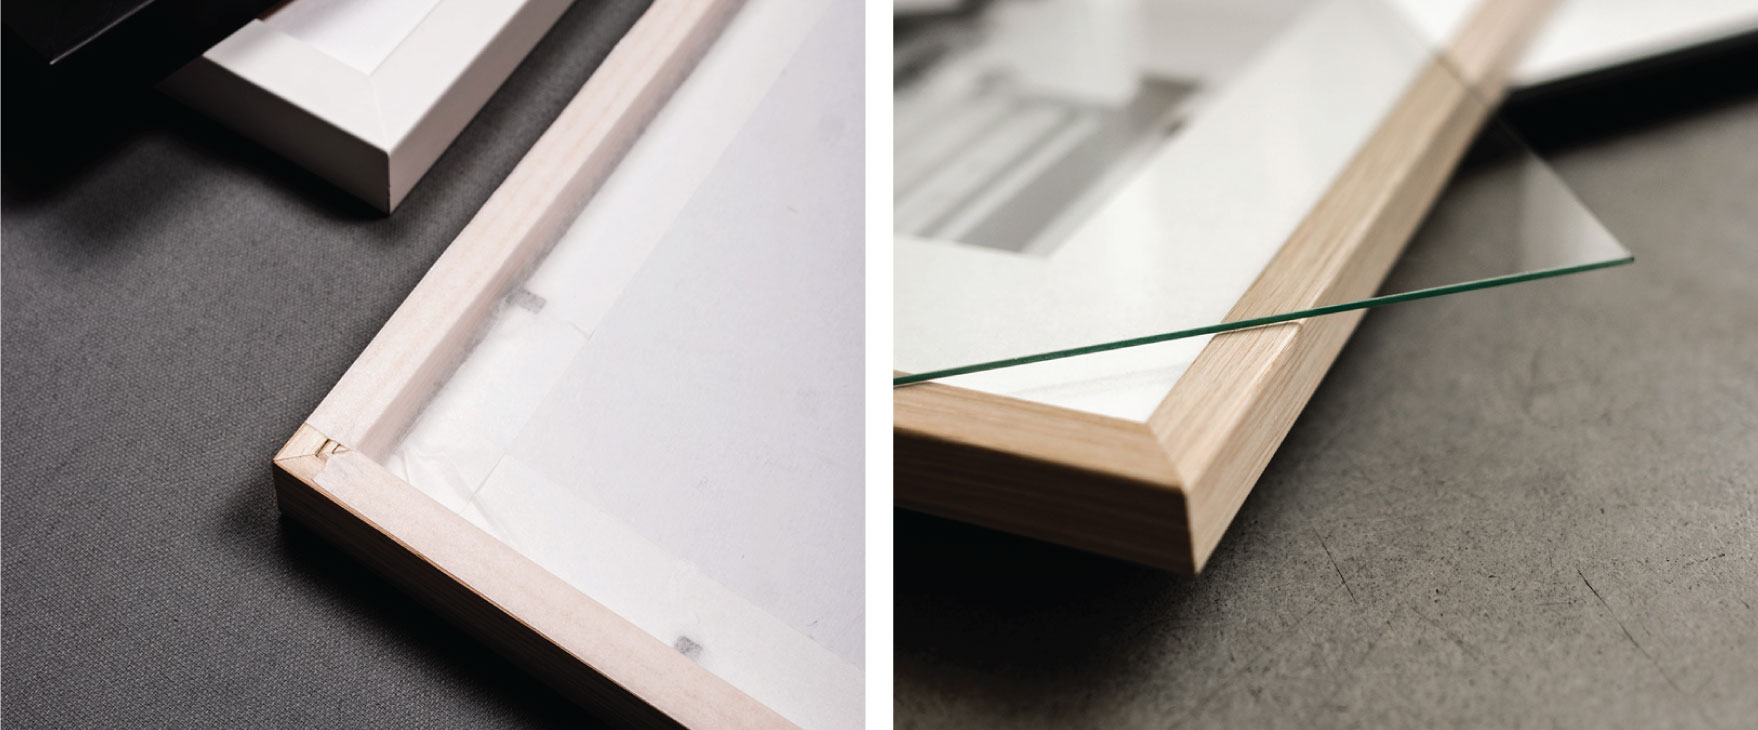 Acid free taped backsides and real glass. Just like in the museums. Why? Because we want your prints to last a lifetime.